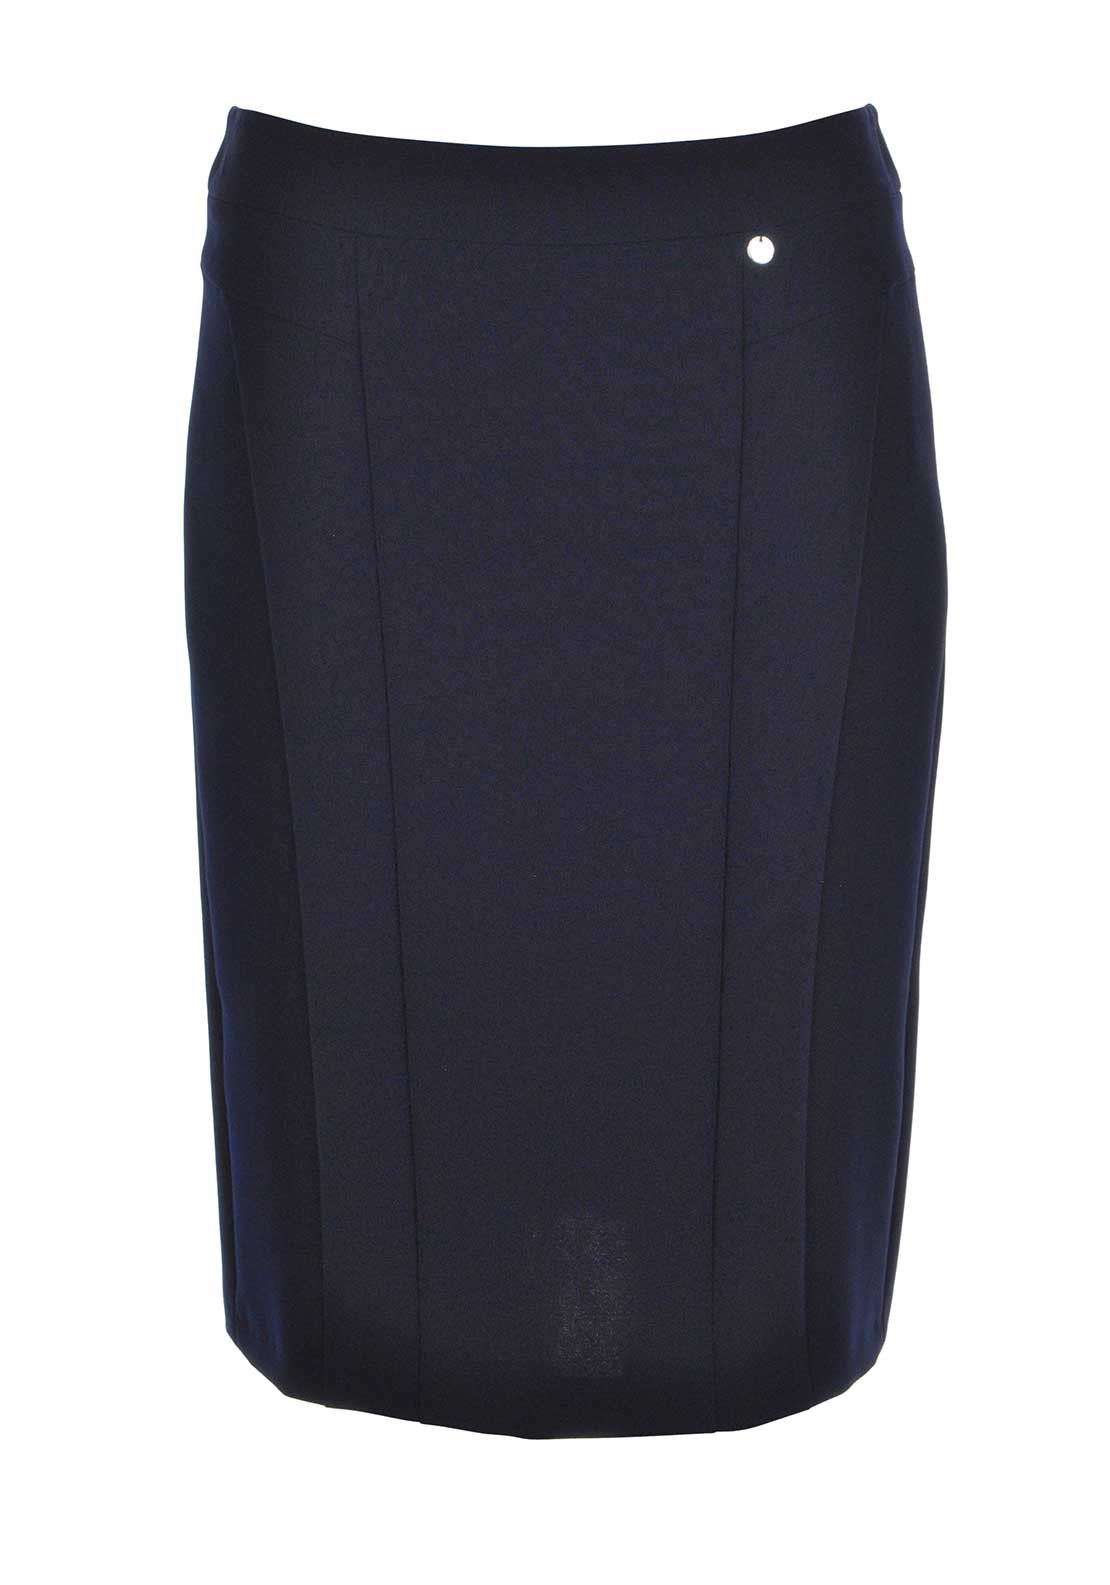 Gerry Weber Pencil Skirt, Navy